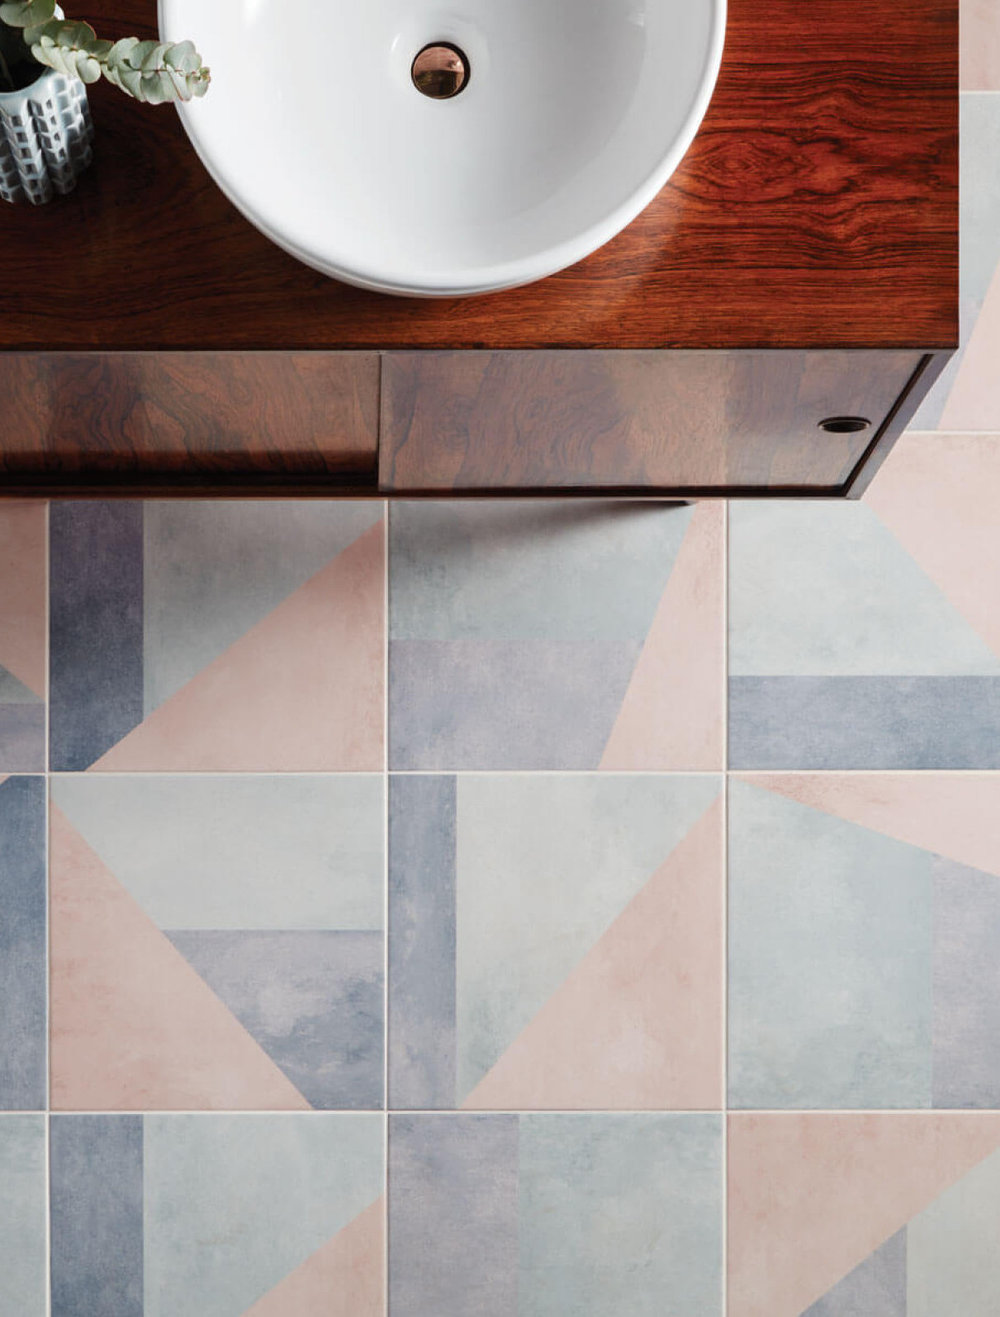 Stepped Up Pastel from British Ceramic Tile: £38.62 per m2